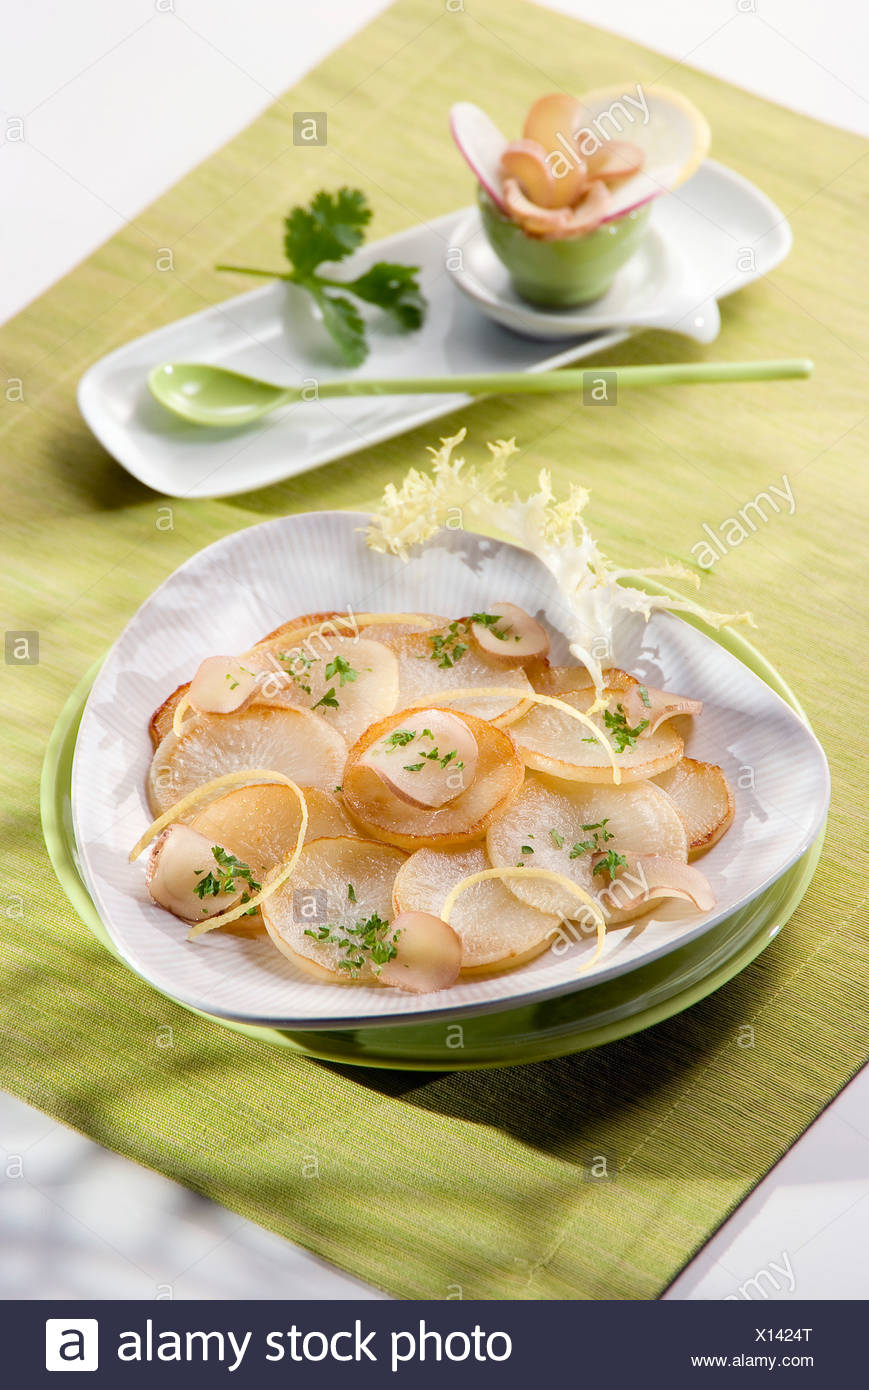 Steam-cooked young turnips - Stock Image